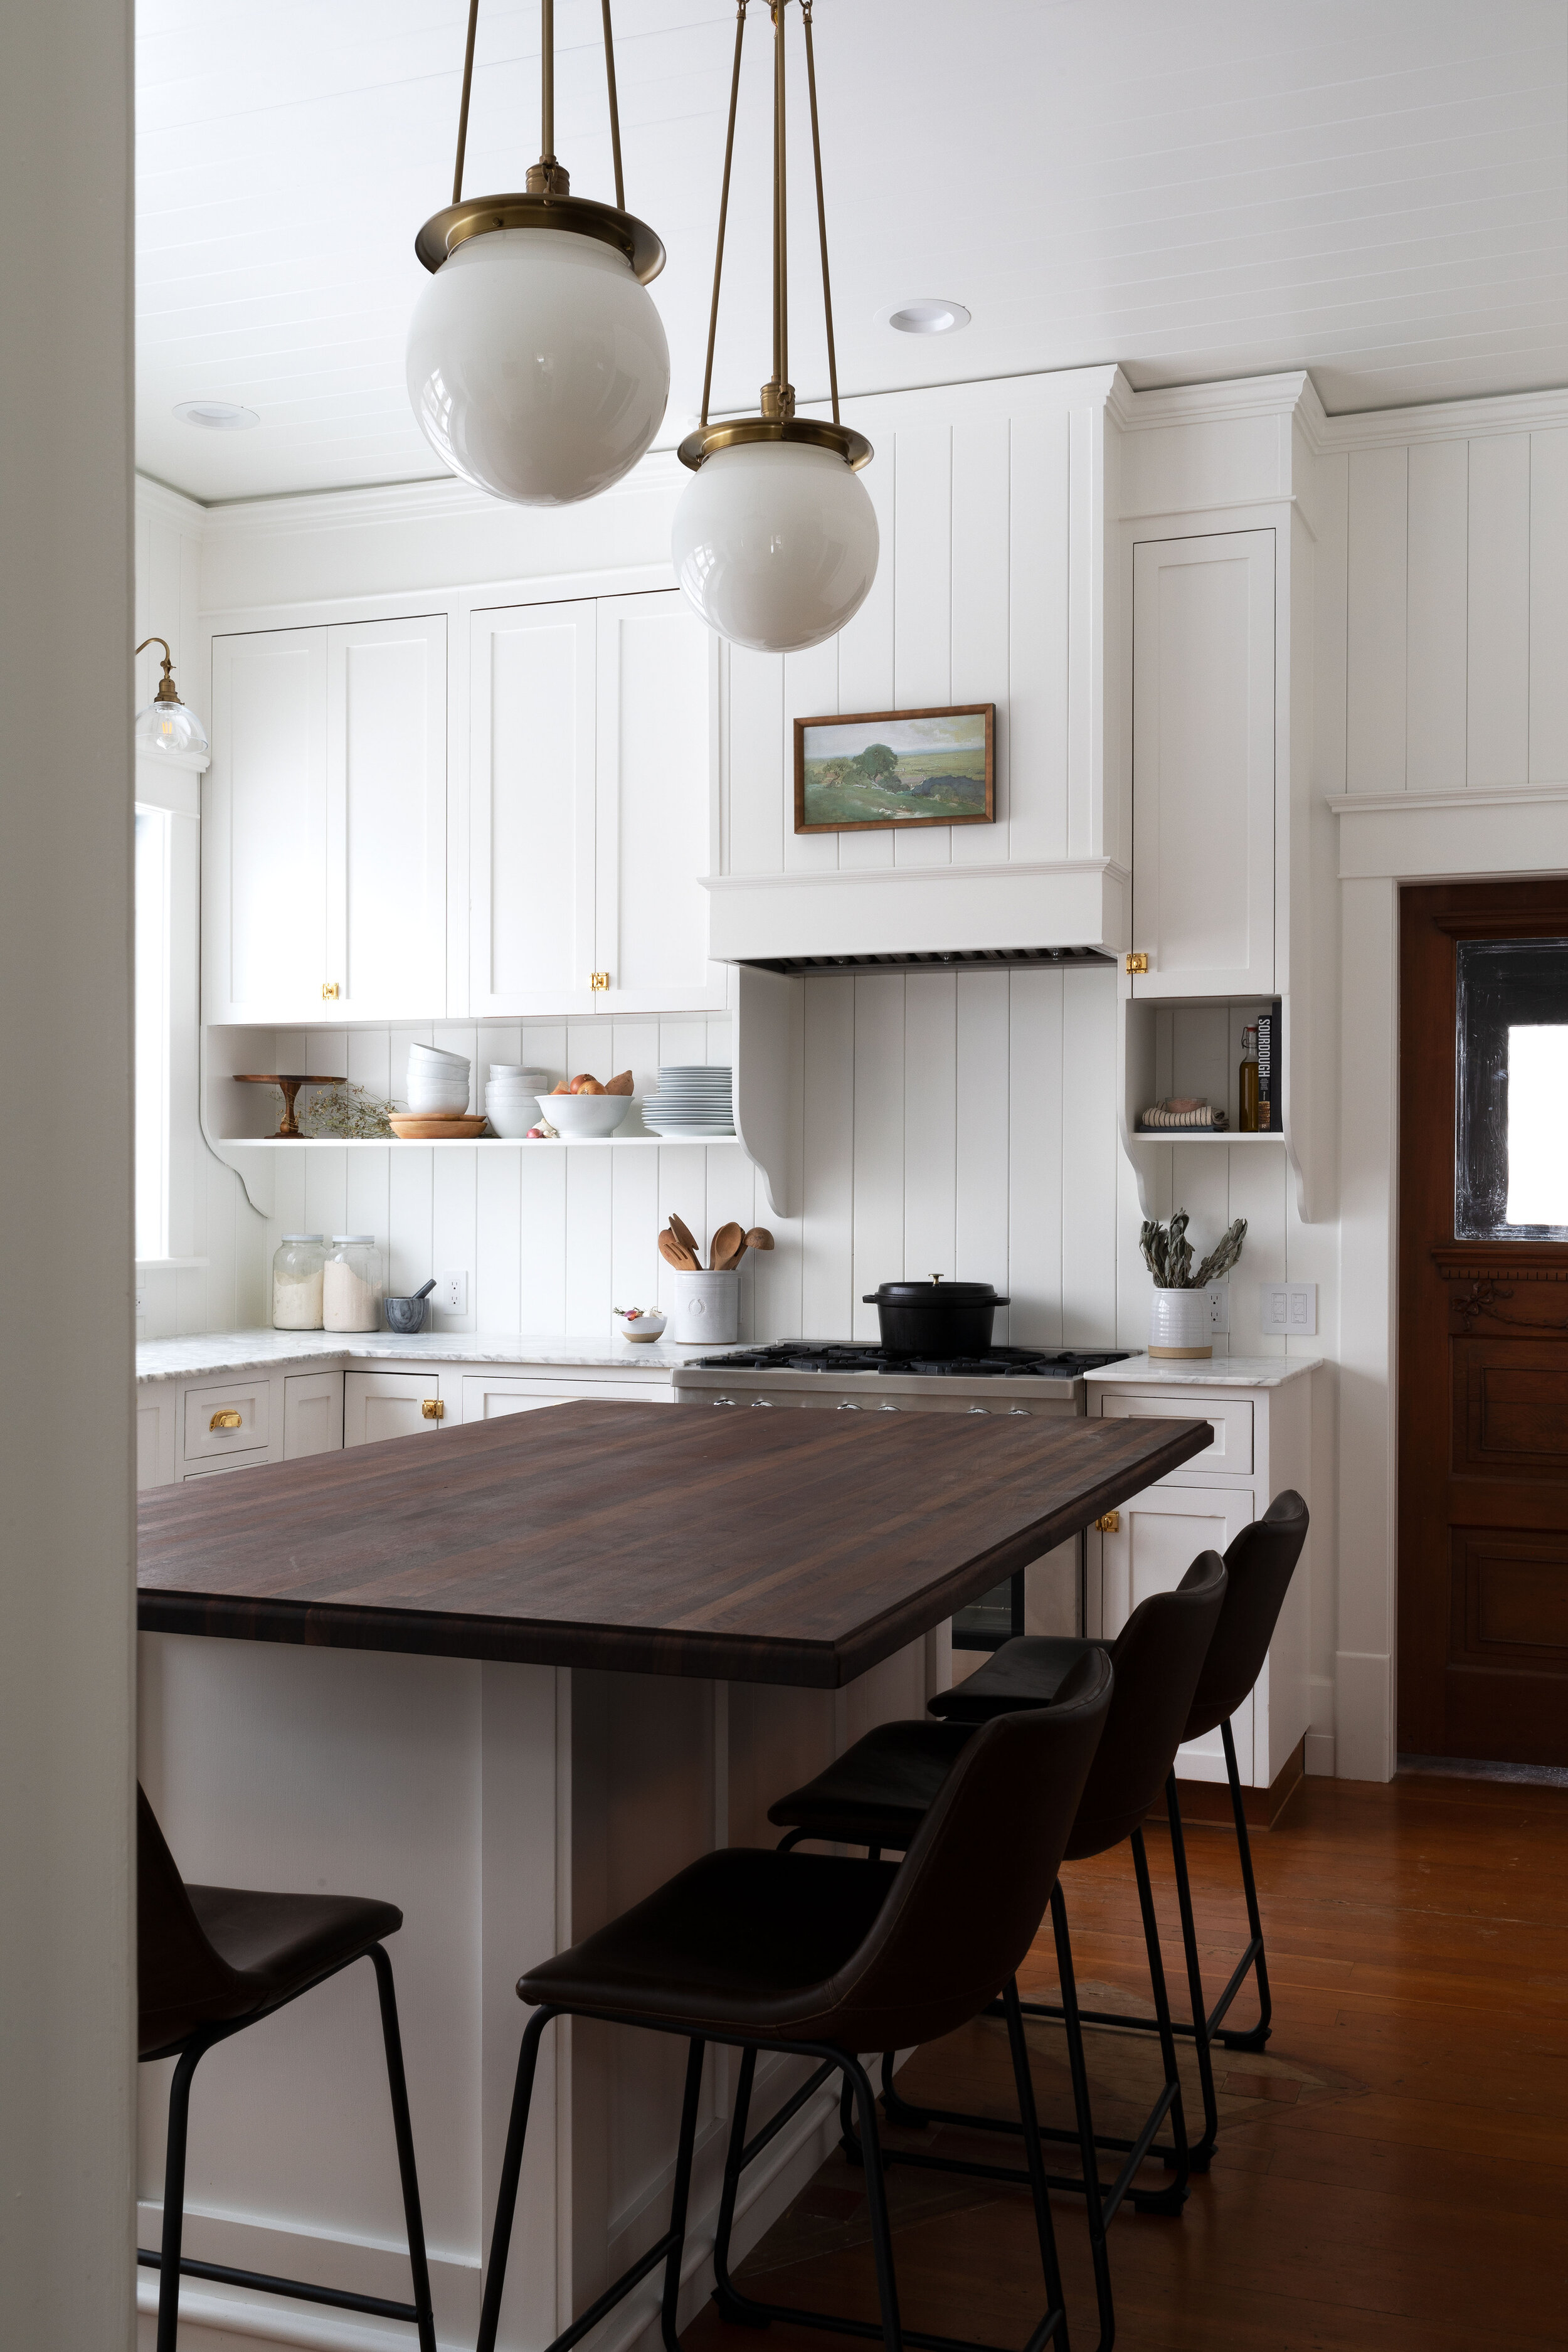 The Grit and Polish - Farmhouse Country Kitchen Reveal 3.0 4 web.jpg